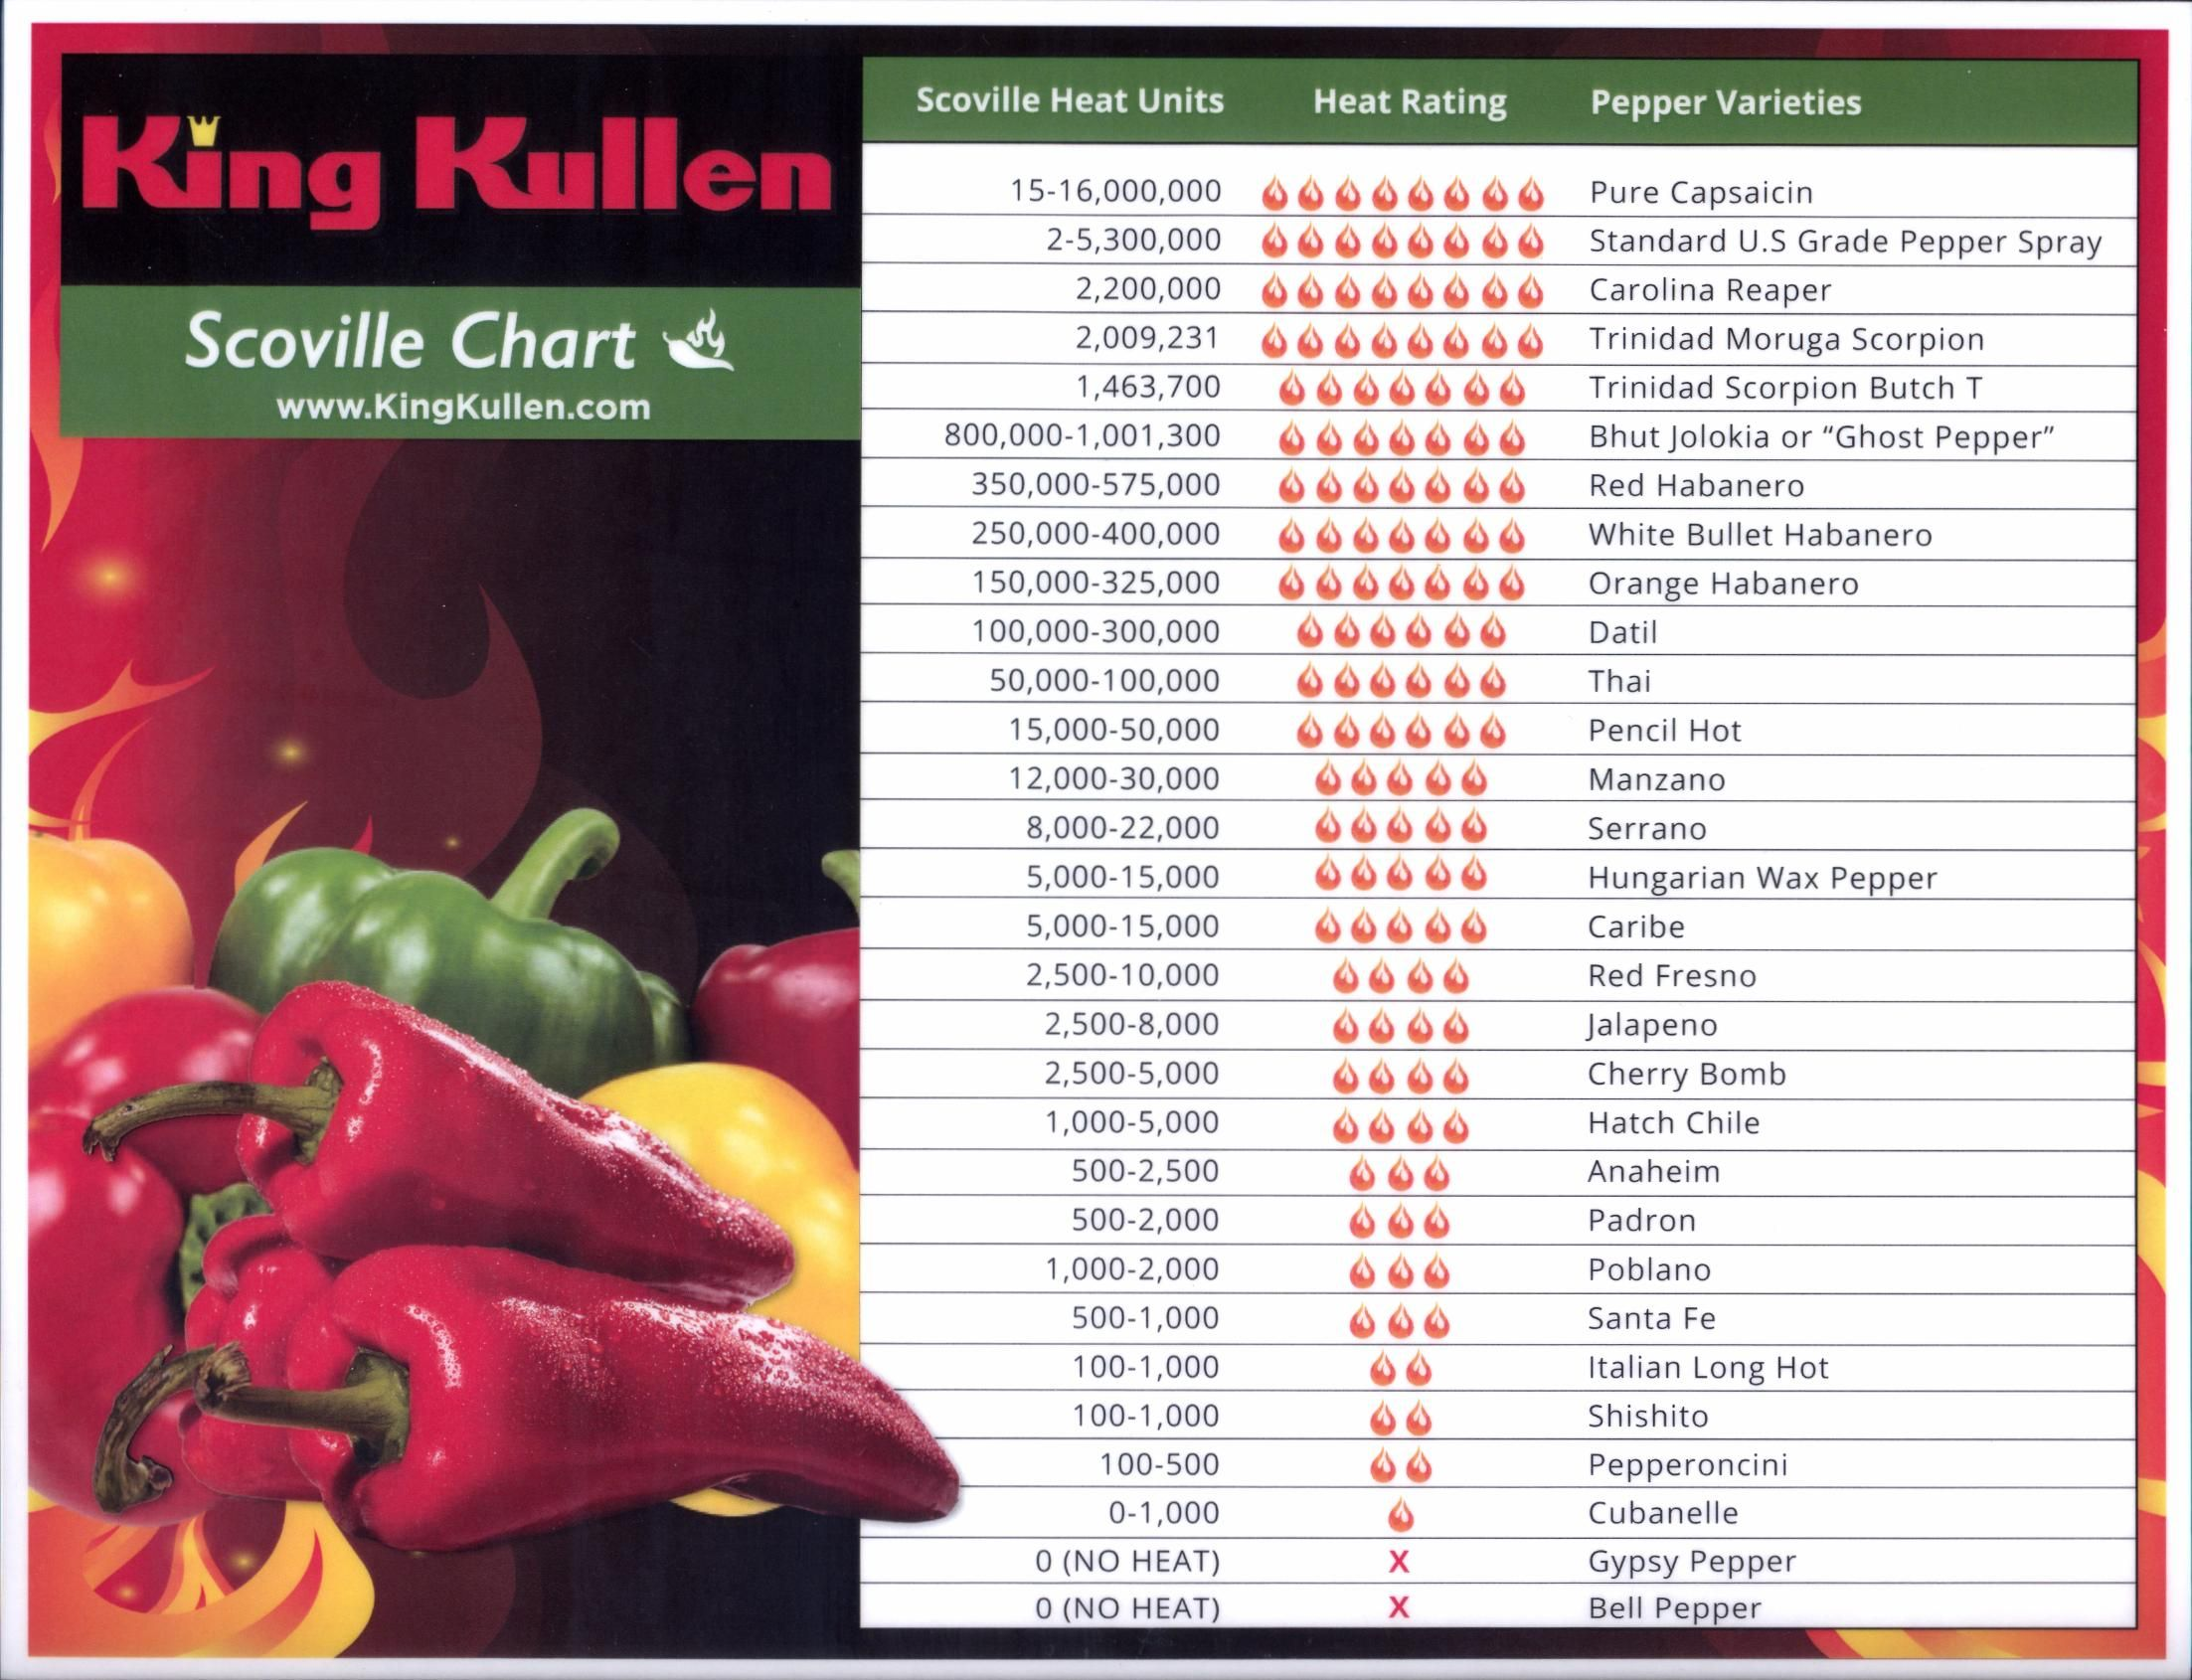 Scoville Heat Scale King Kullen Stuffed Peppers Pure Capsaicin Spicy Recipes